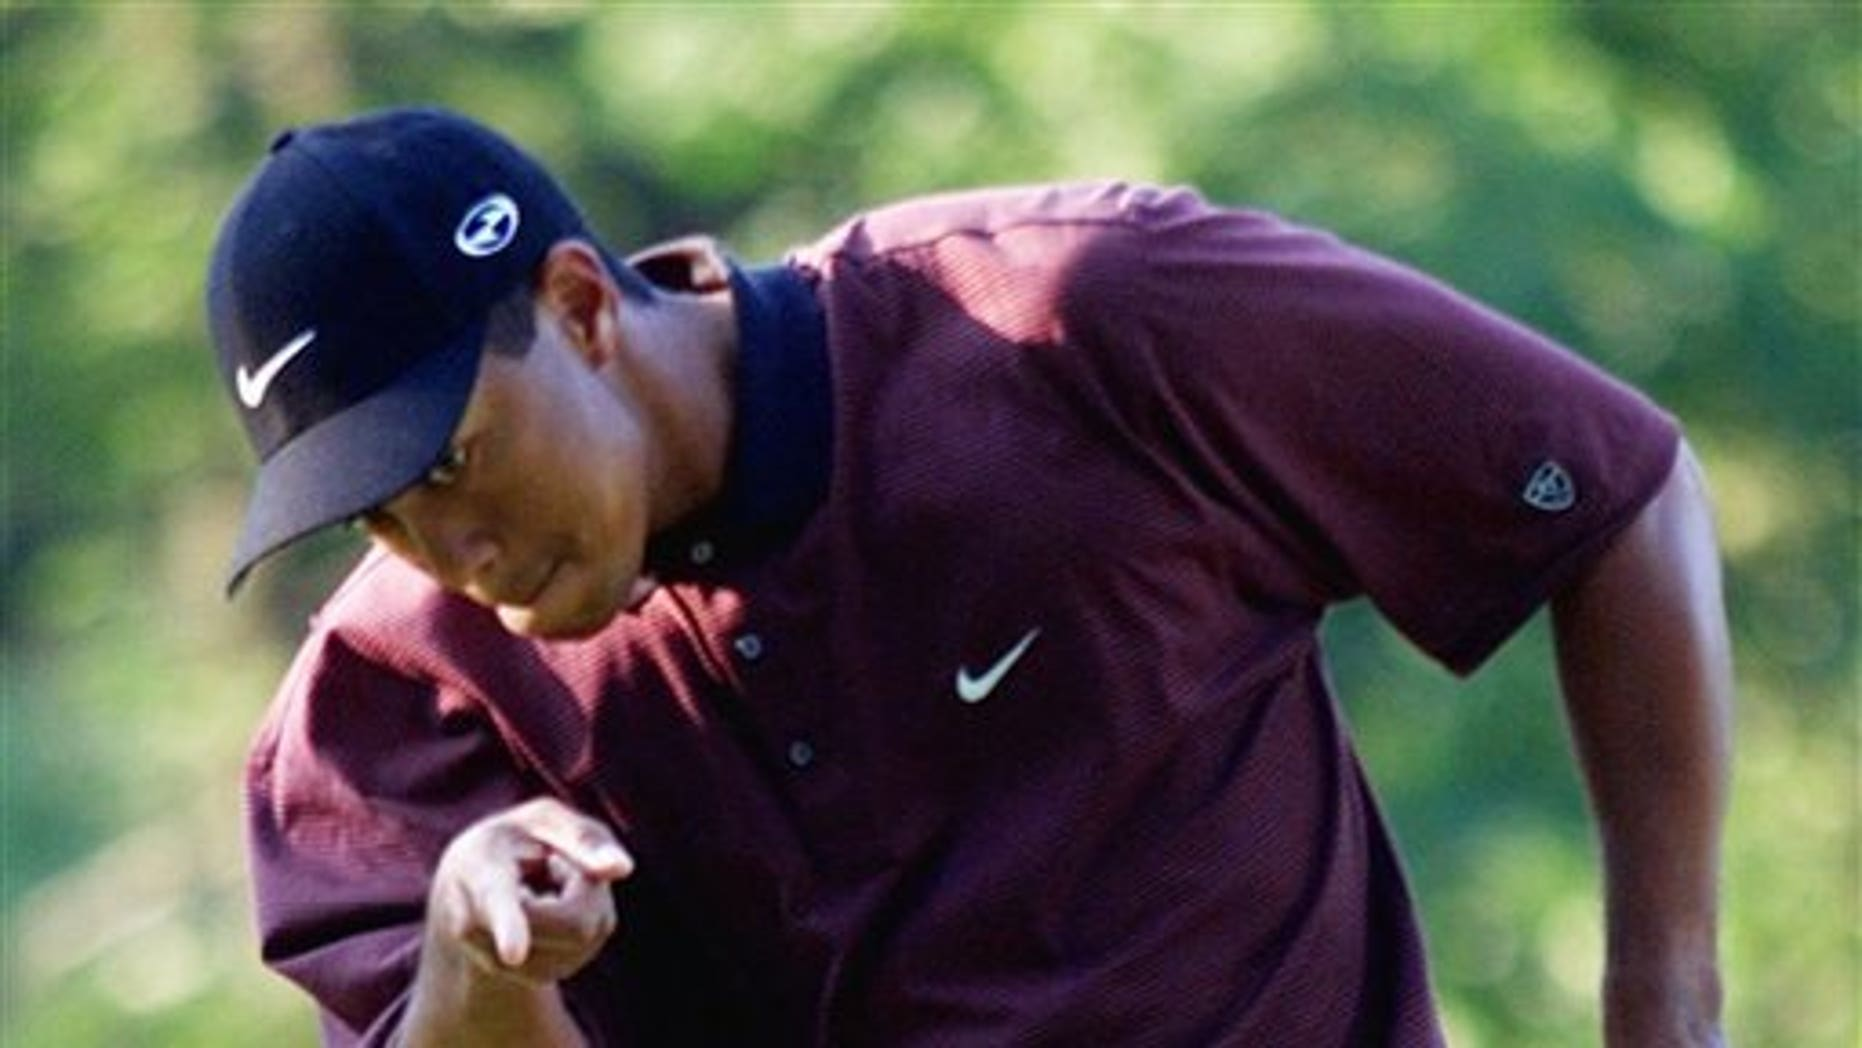 FILE - In this Aug. 20, 2000 file photo, Tiger Woods points to his ball as it drops for birdie on the first hole of a three-hole playoff against Bob May at the PGA Championship at the Valhalla Golf Club in Louisville, Ky. On his web site Friday night, Dec. 11, 2009, Woods announced that he is taking an indefinite break from professional golf. (AP Photo/Chuck Burton, File)